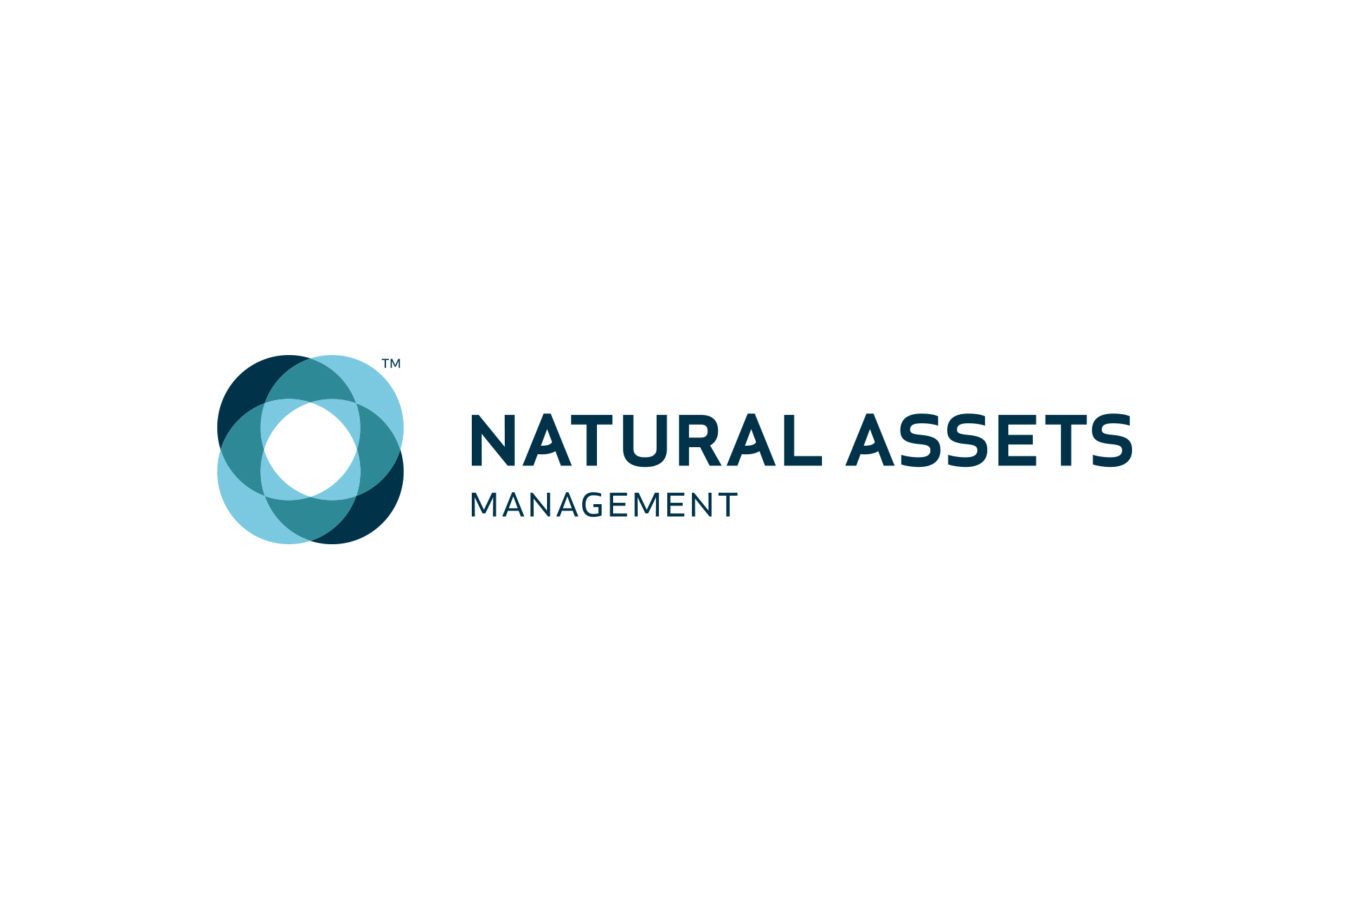 Visual Identity<br>Natural Assets